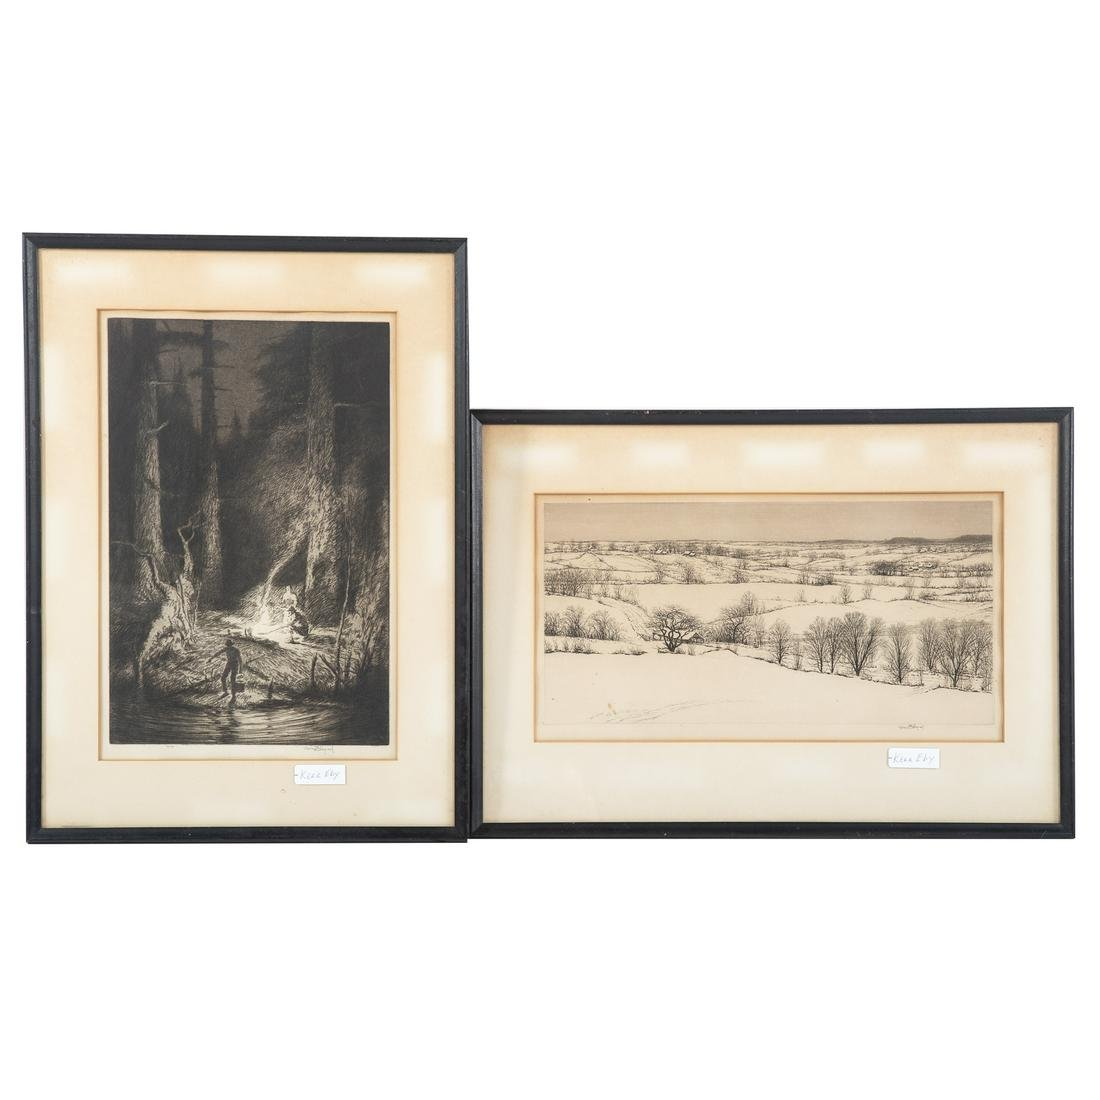 Kerr Eby. Two Framed Etchings